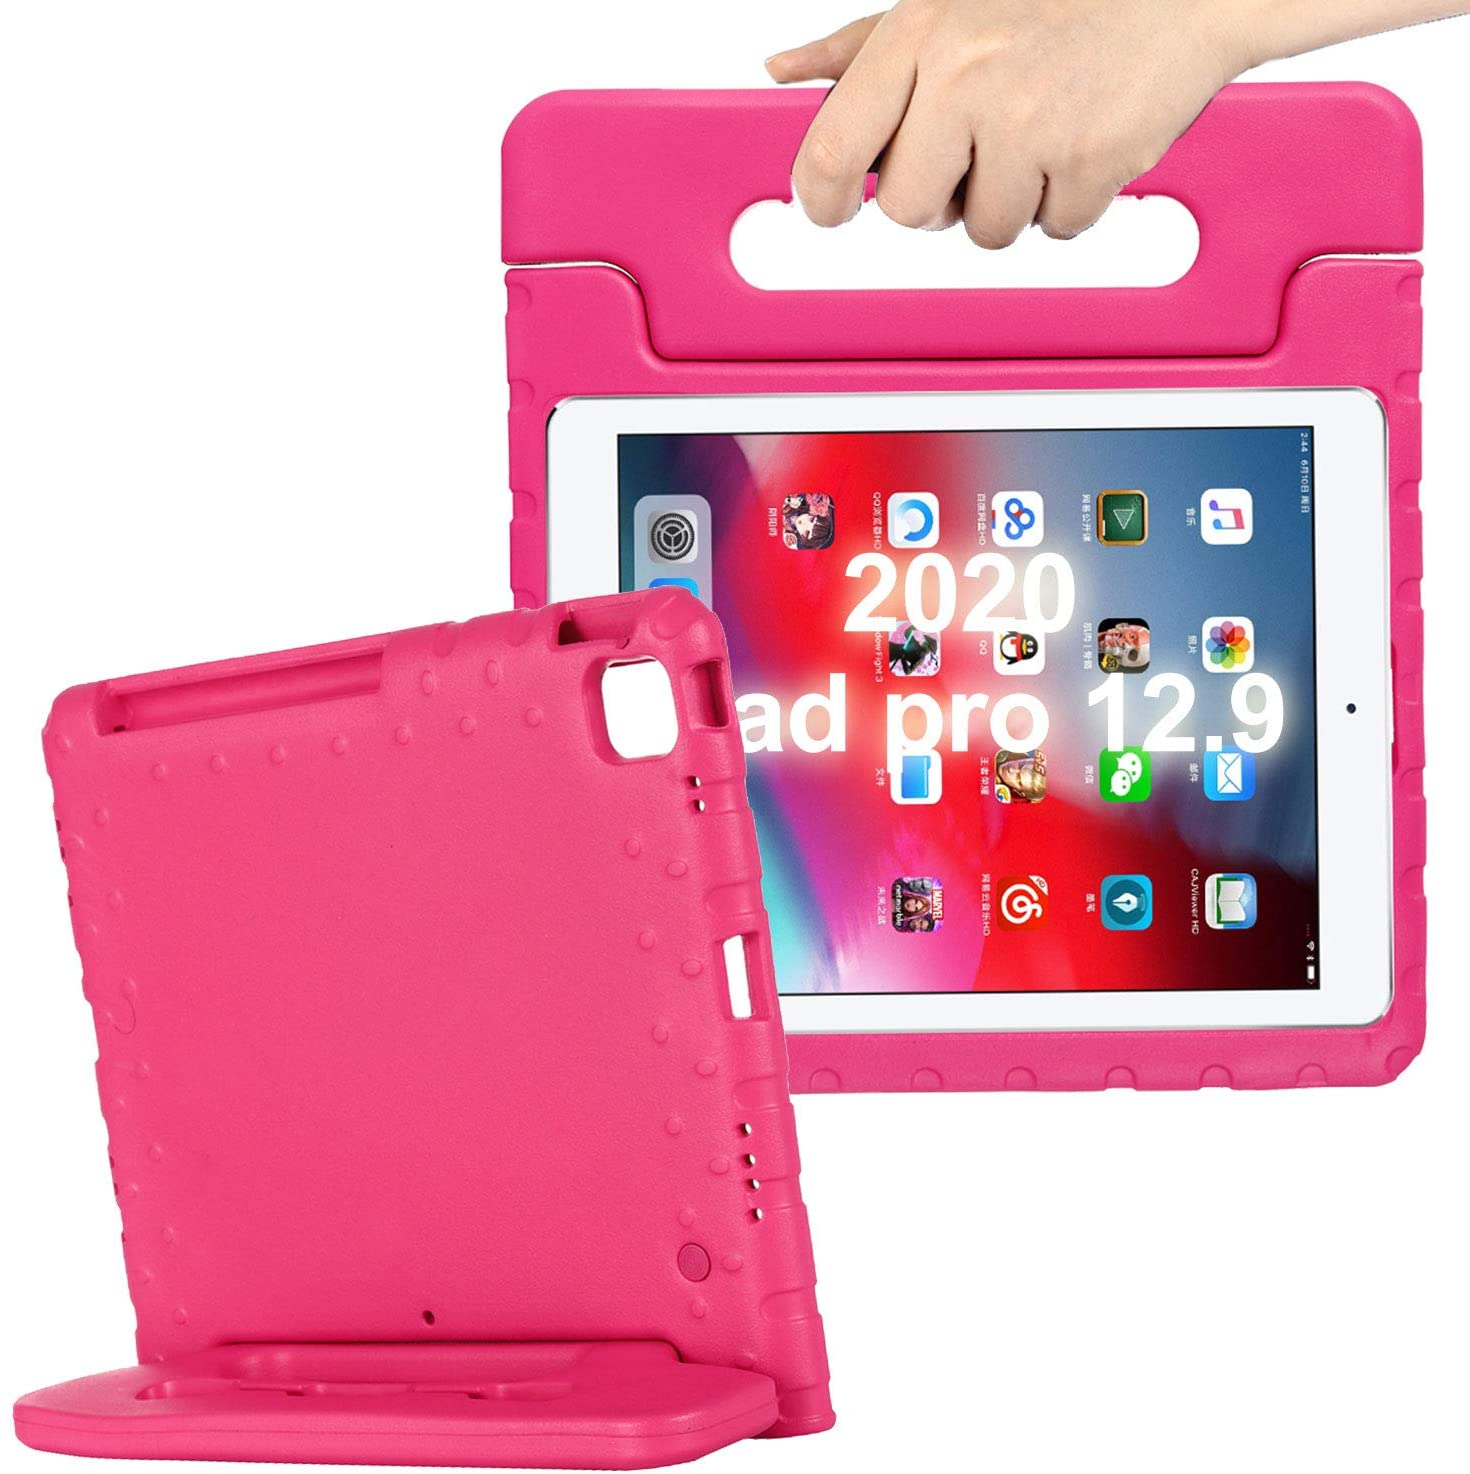 New iPad Pro 12.9 inch 4th Generation 2020 Case for Kids - Cookk Kiddie Series [Pencil Grove] [Handle & Kickstand] Light Weight Shockproof Boys Girls Protective Covers for 2020 iPad Pro 12.9